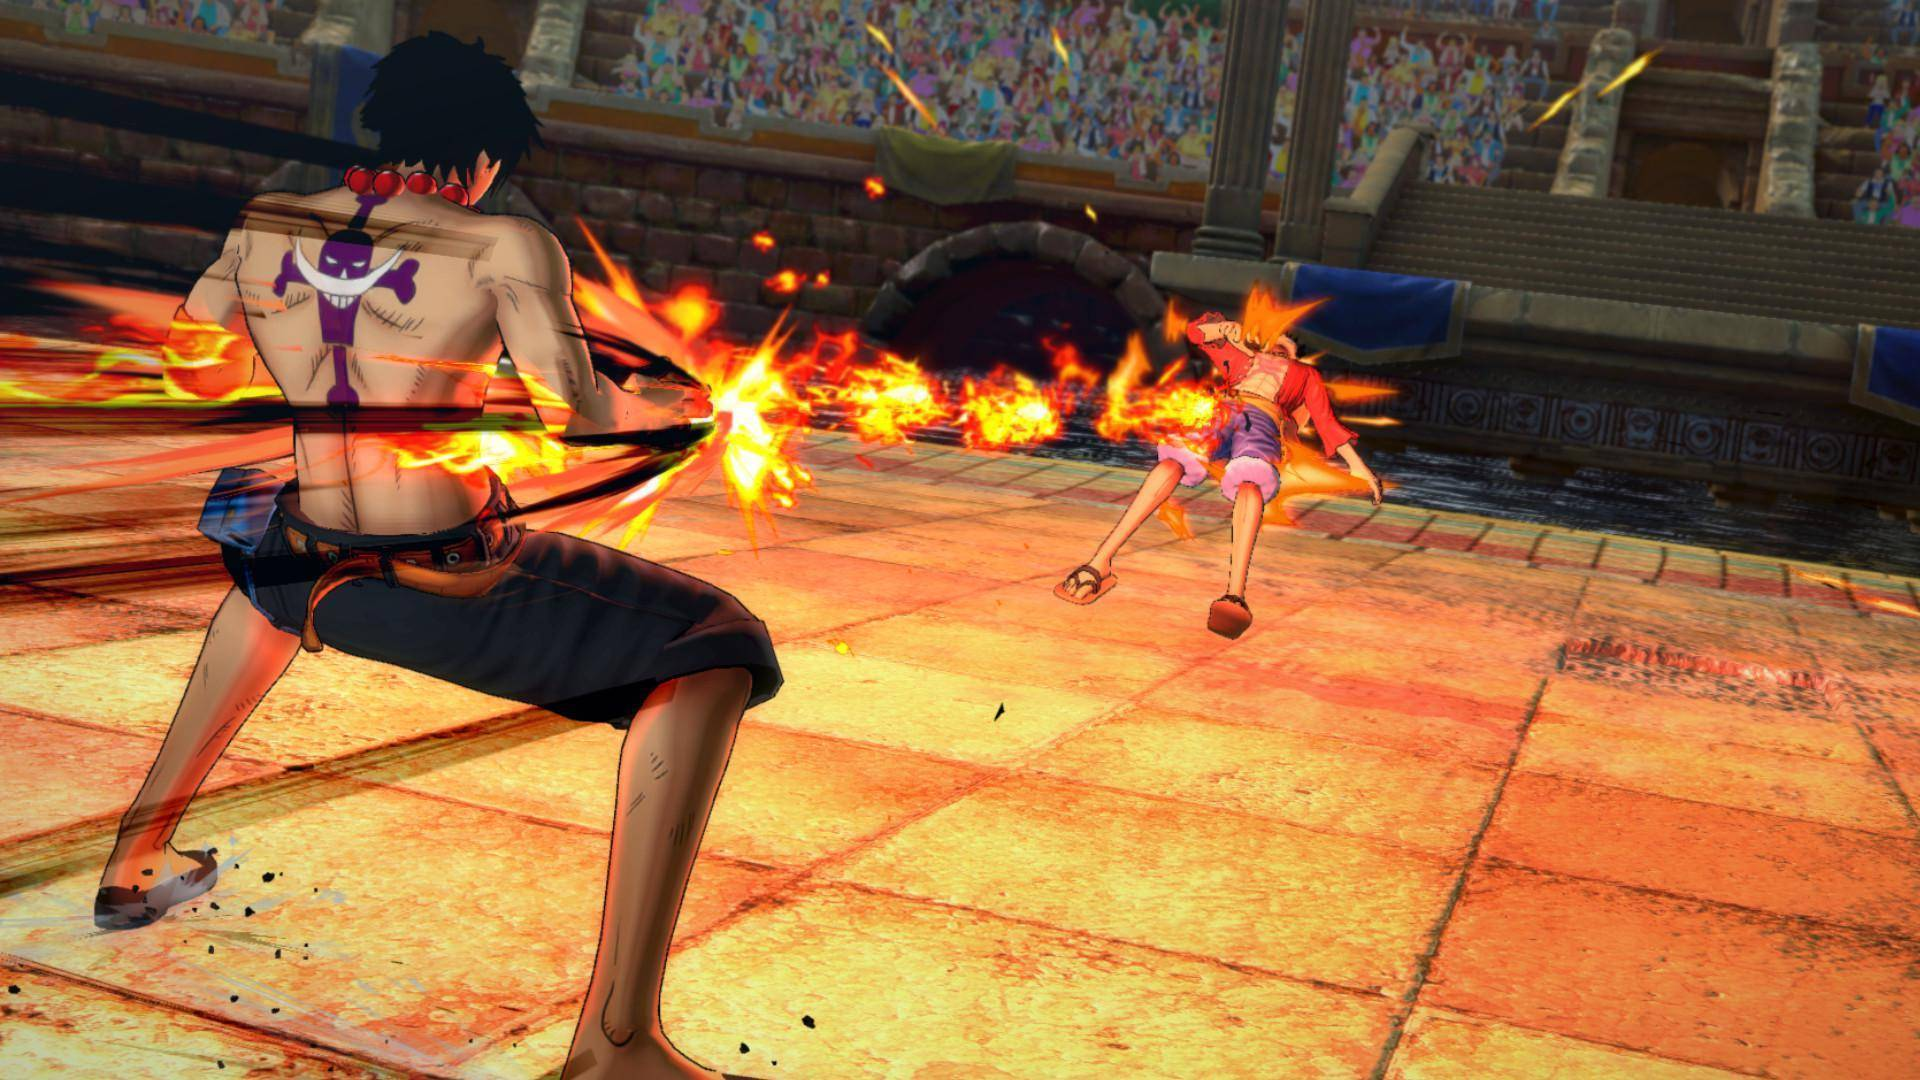 Buy One Piece Burning Blood PS4 - compare prices